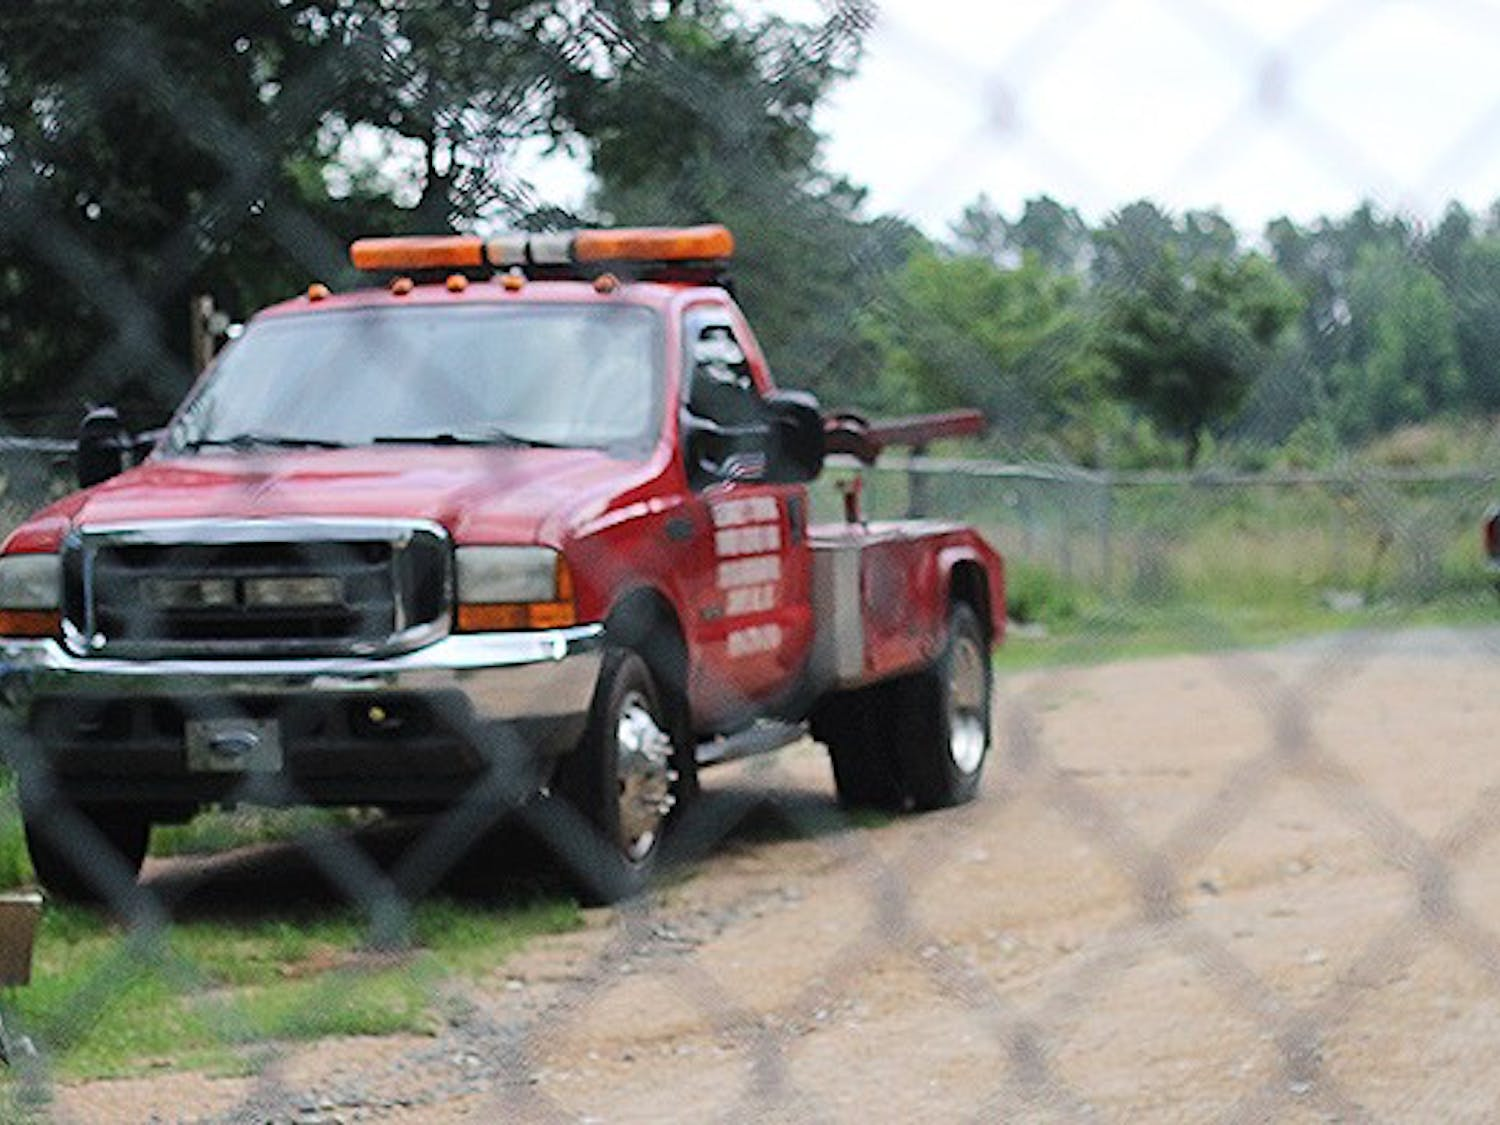 George's Towing and Recovery filed a lawsuit, now overturned, against Chapel Hill's cell phone ban and towing restrictions.